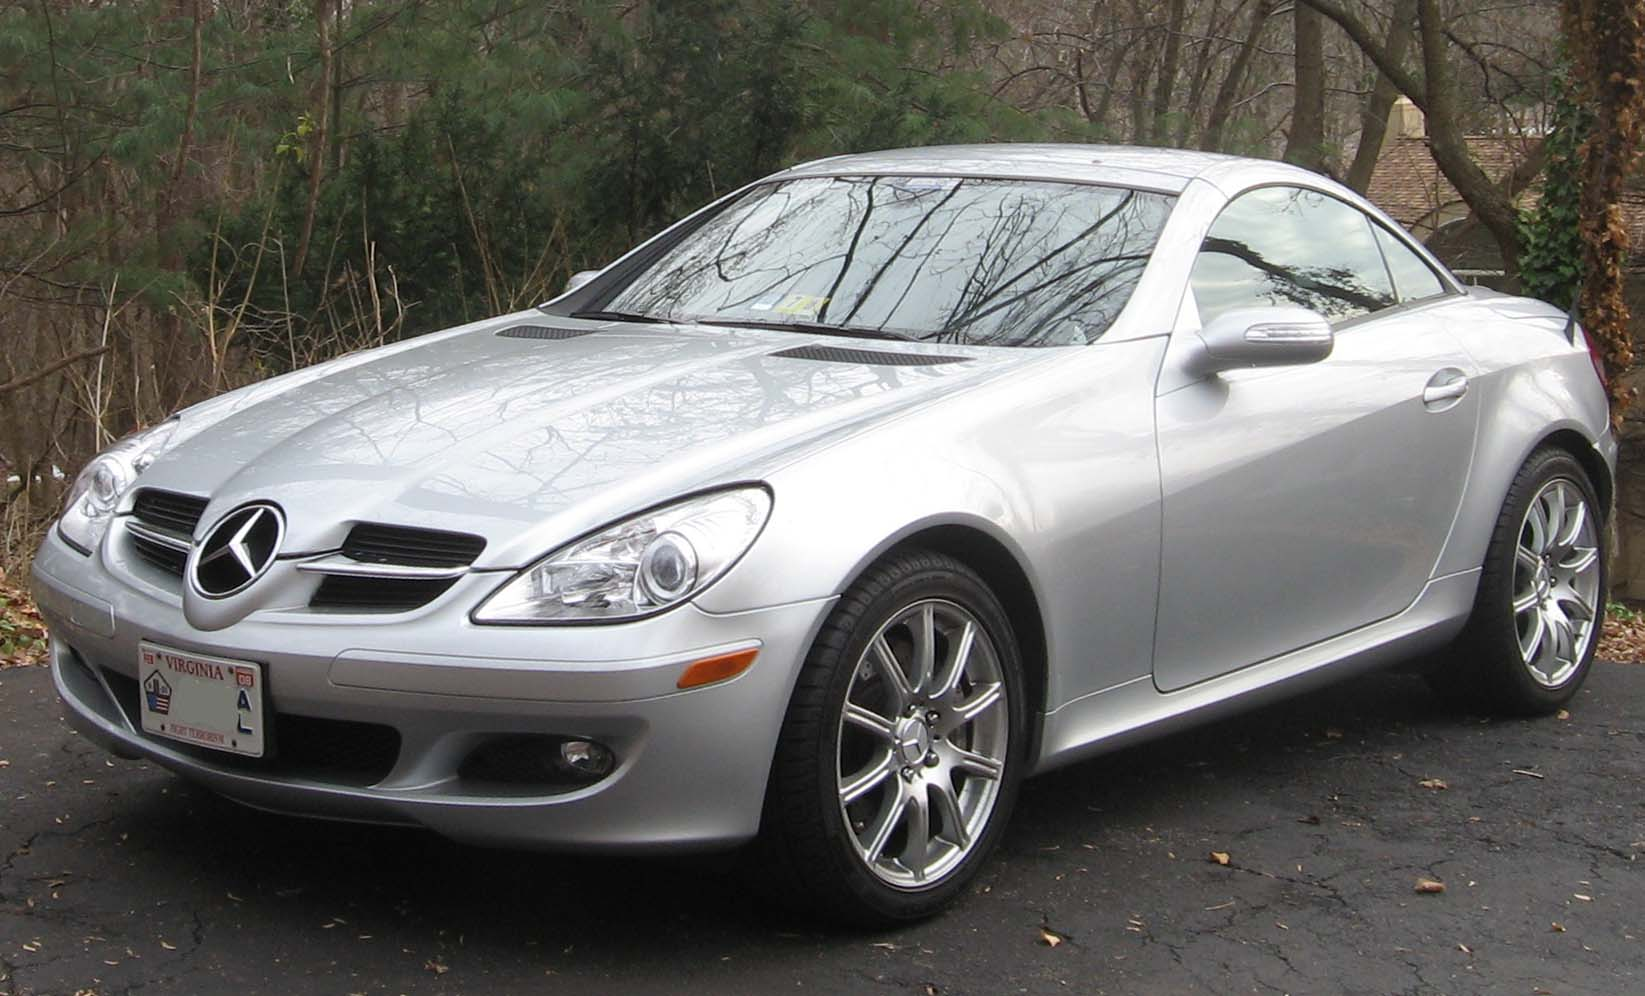 mercedes slk wallpaper #12